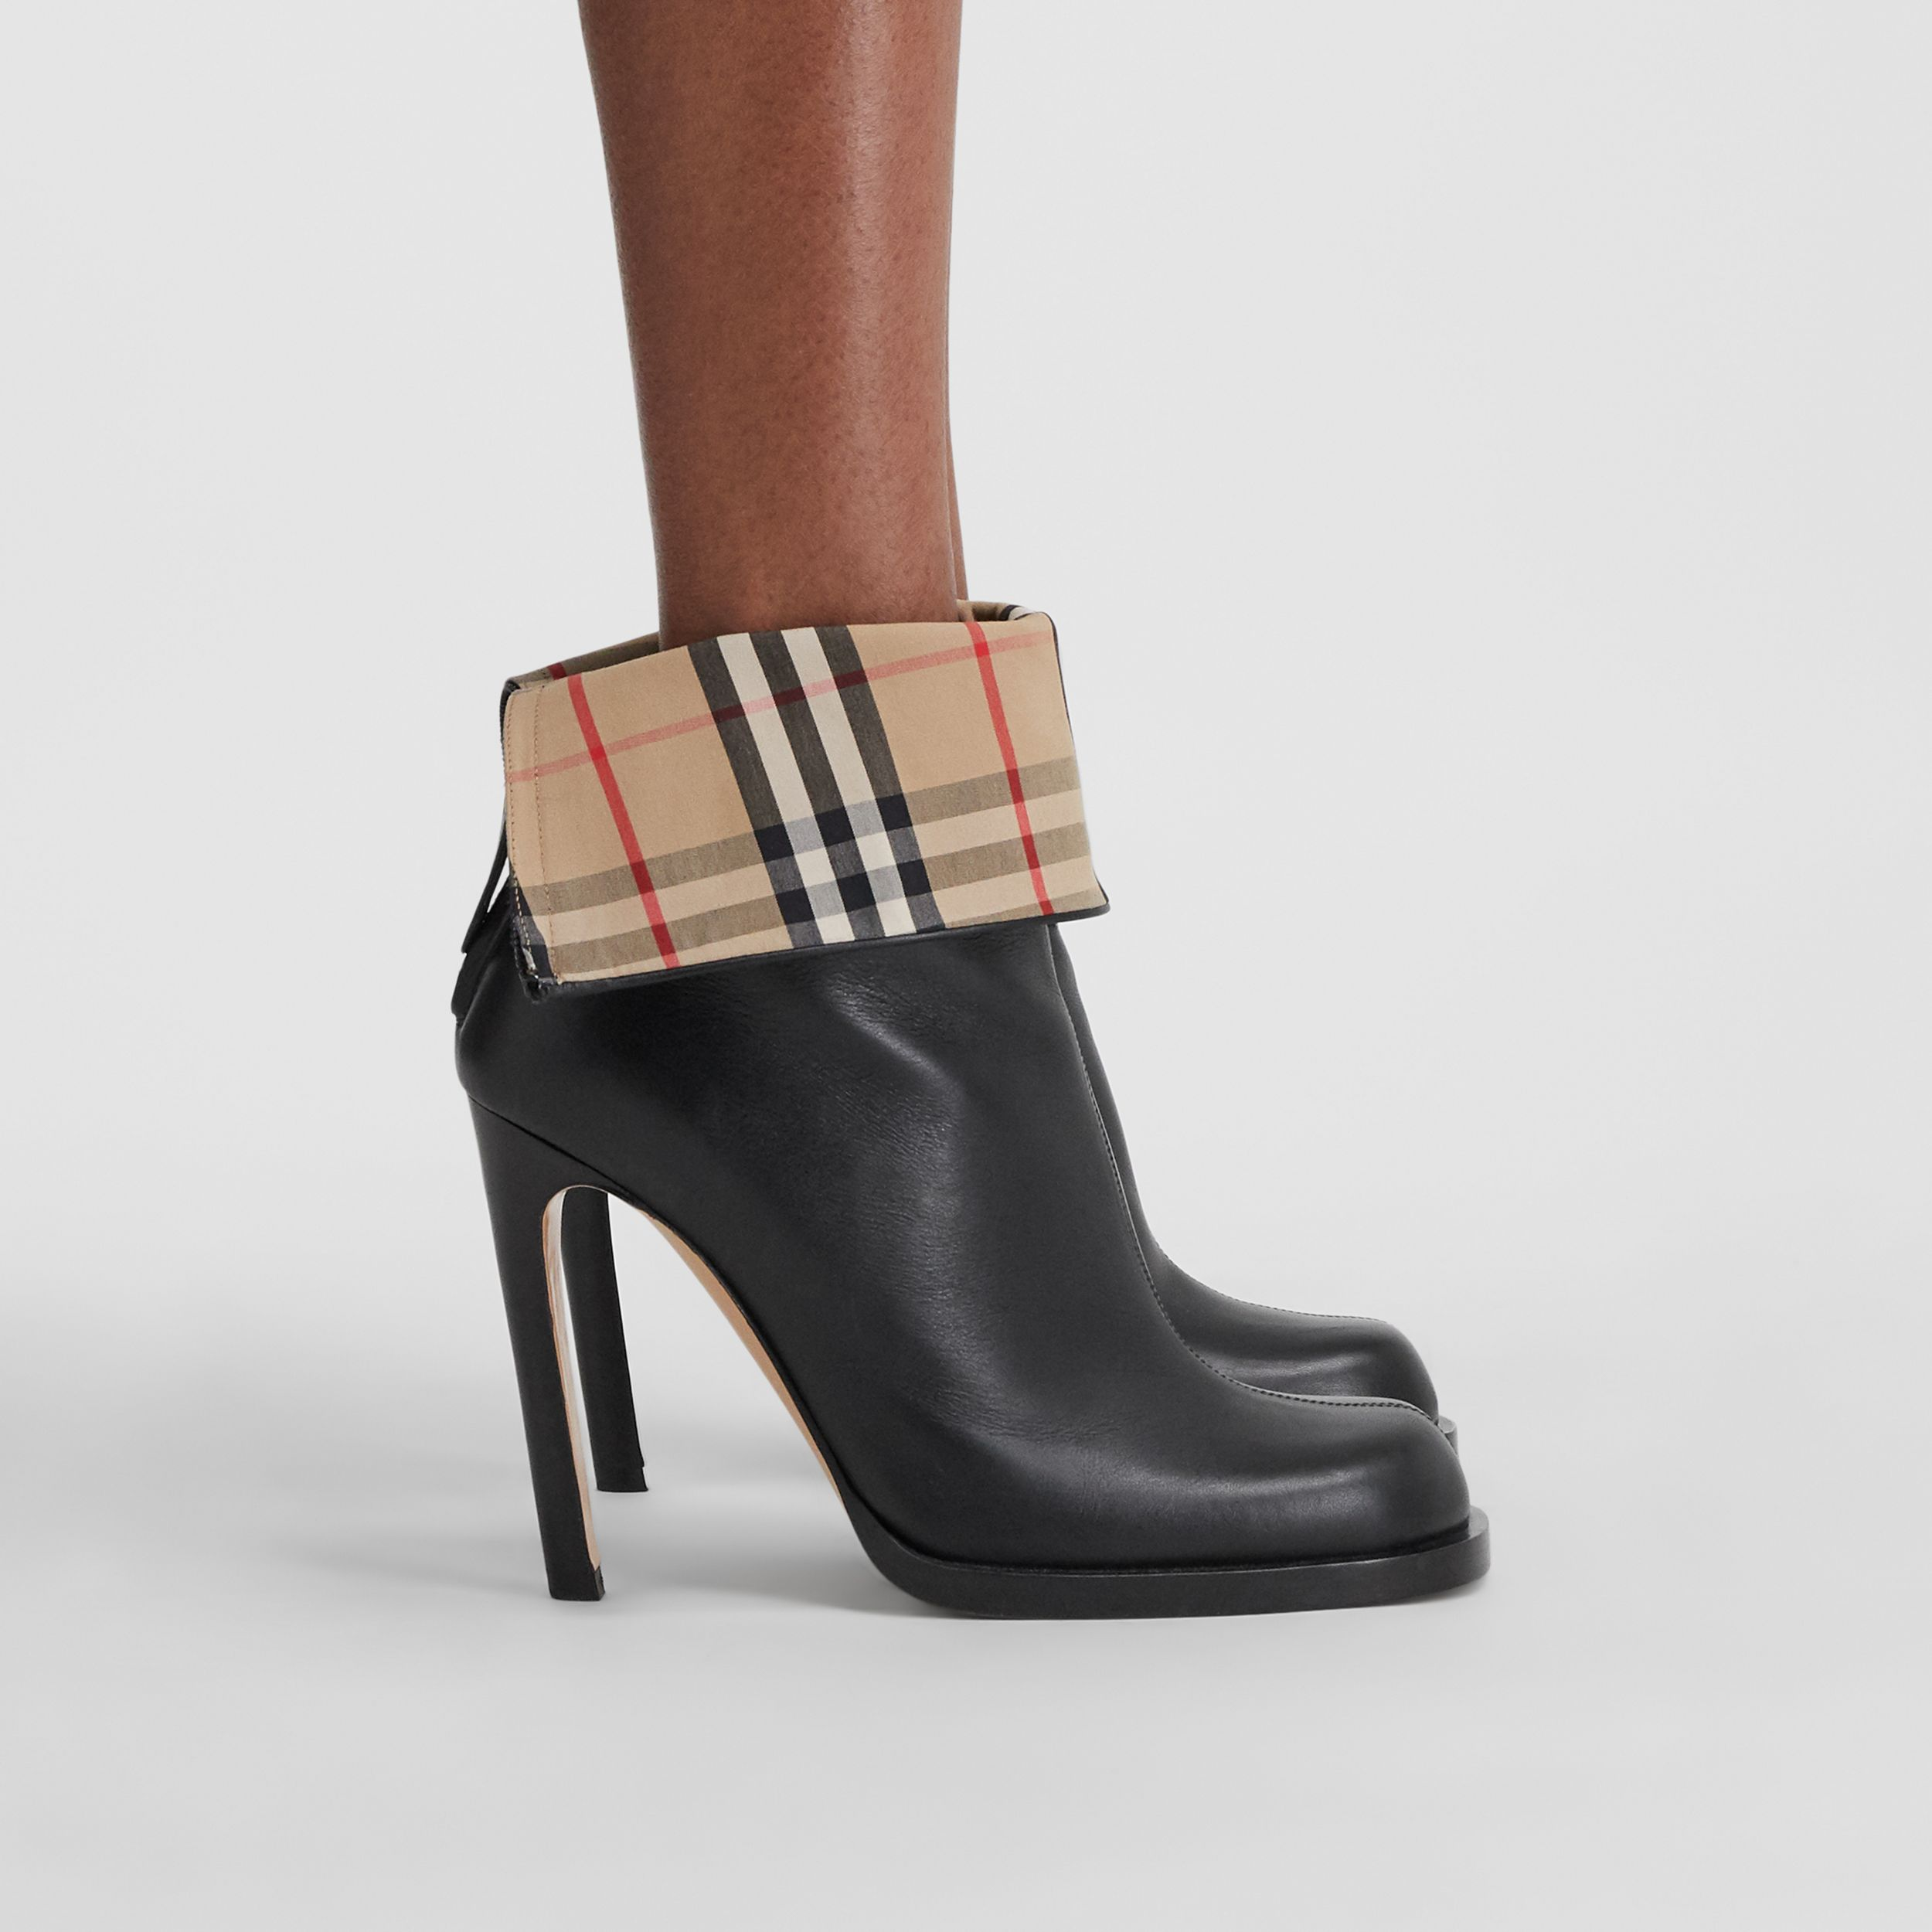 Vintage Check-lined Leather Ankle Boots in Black - Women | Burberry - 1